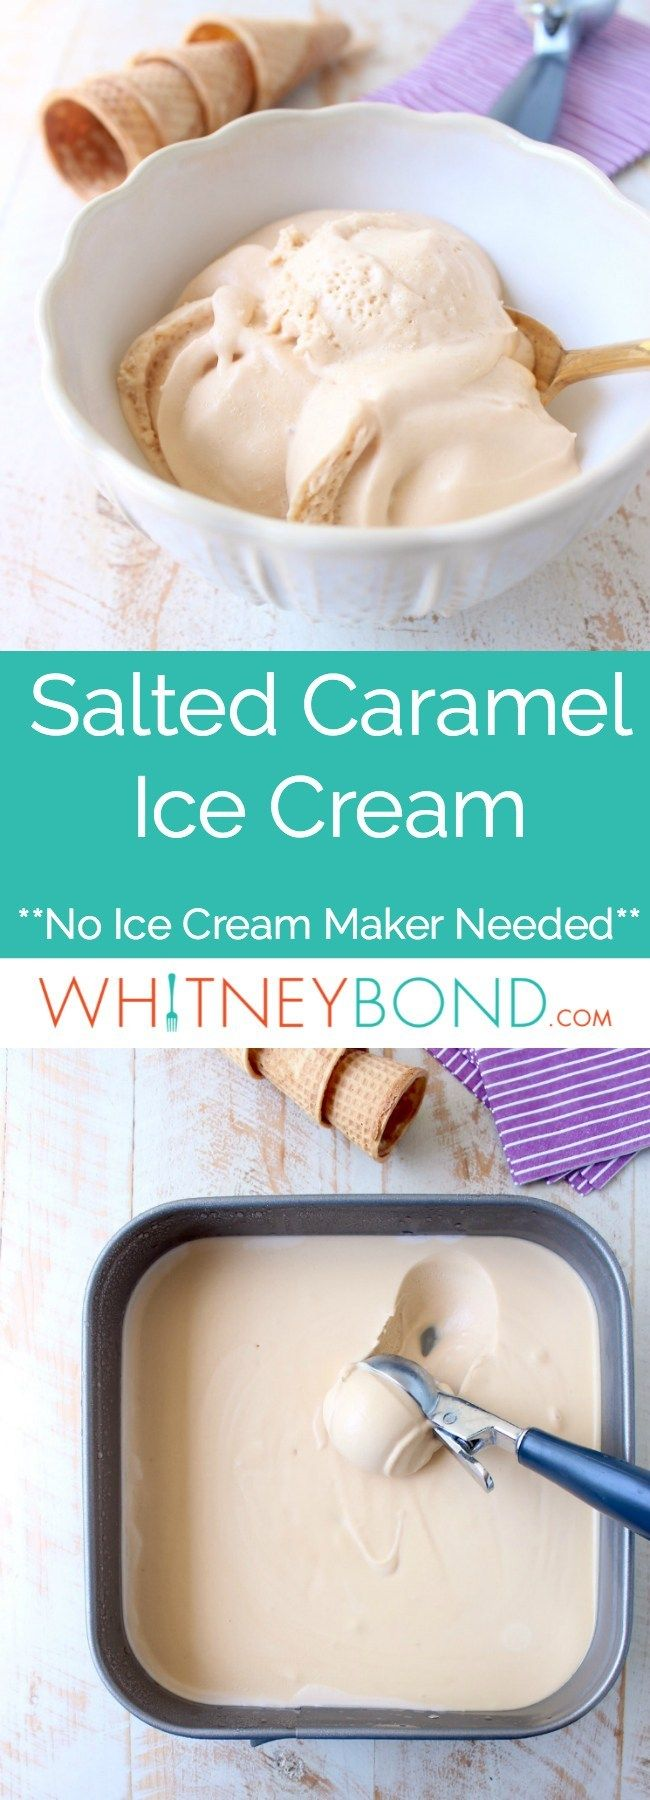 This No Churn Salted Caramel Ice Cream Recipe is made without an ice cream maker, making it an easy homemade ice cream recipe that is totally delicious! #easyhomemadeicecream